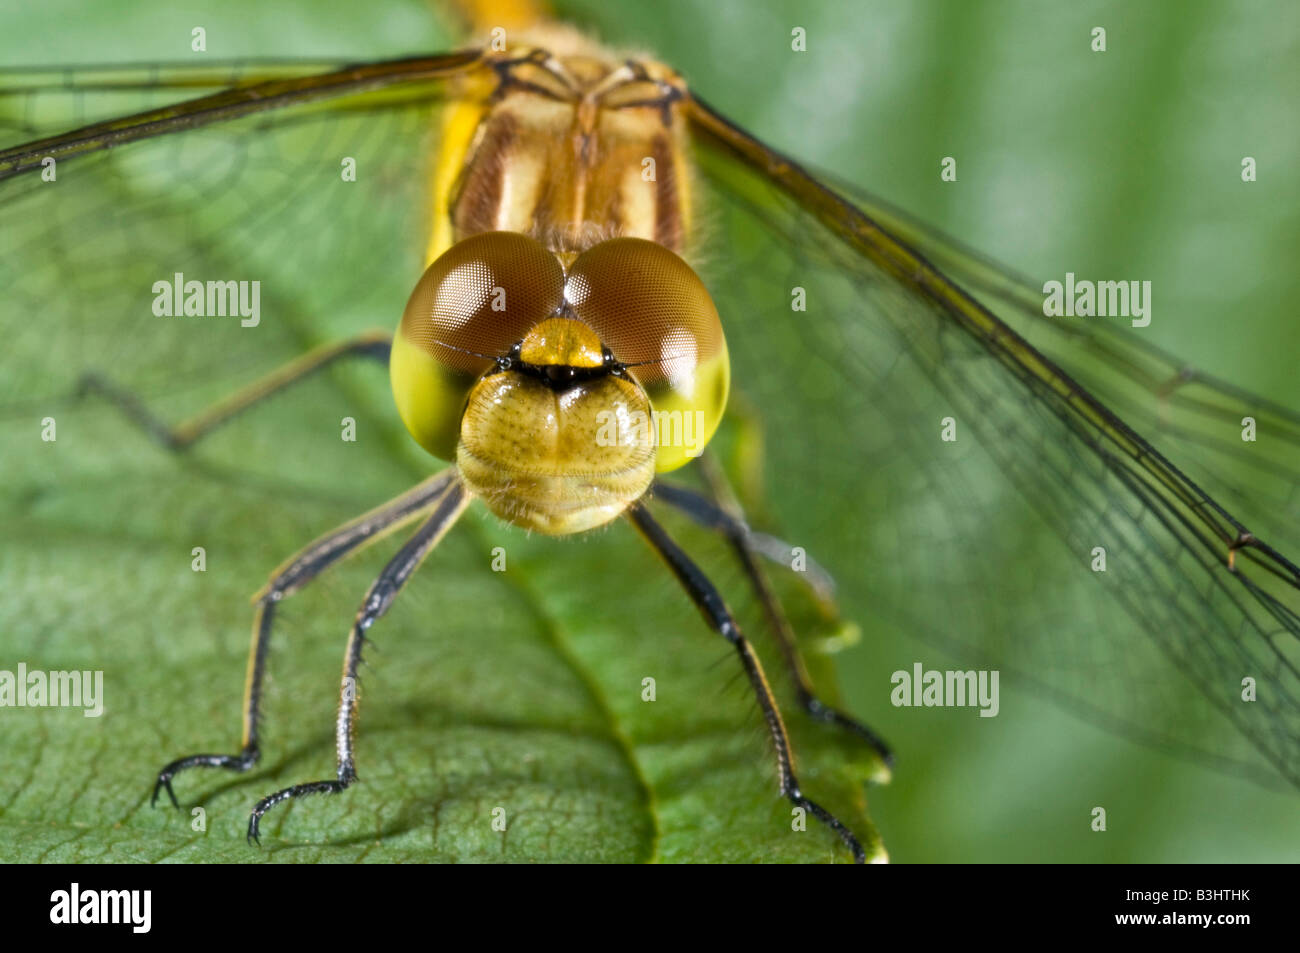 Common Darter dragonfly sympetrum stiolatum resting on a leaf. Stock Photo